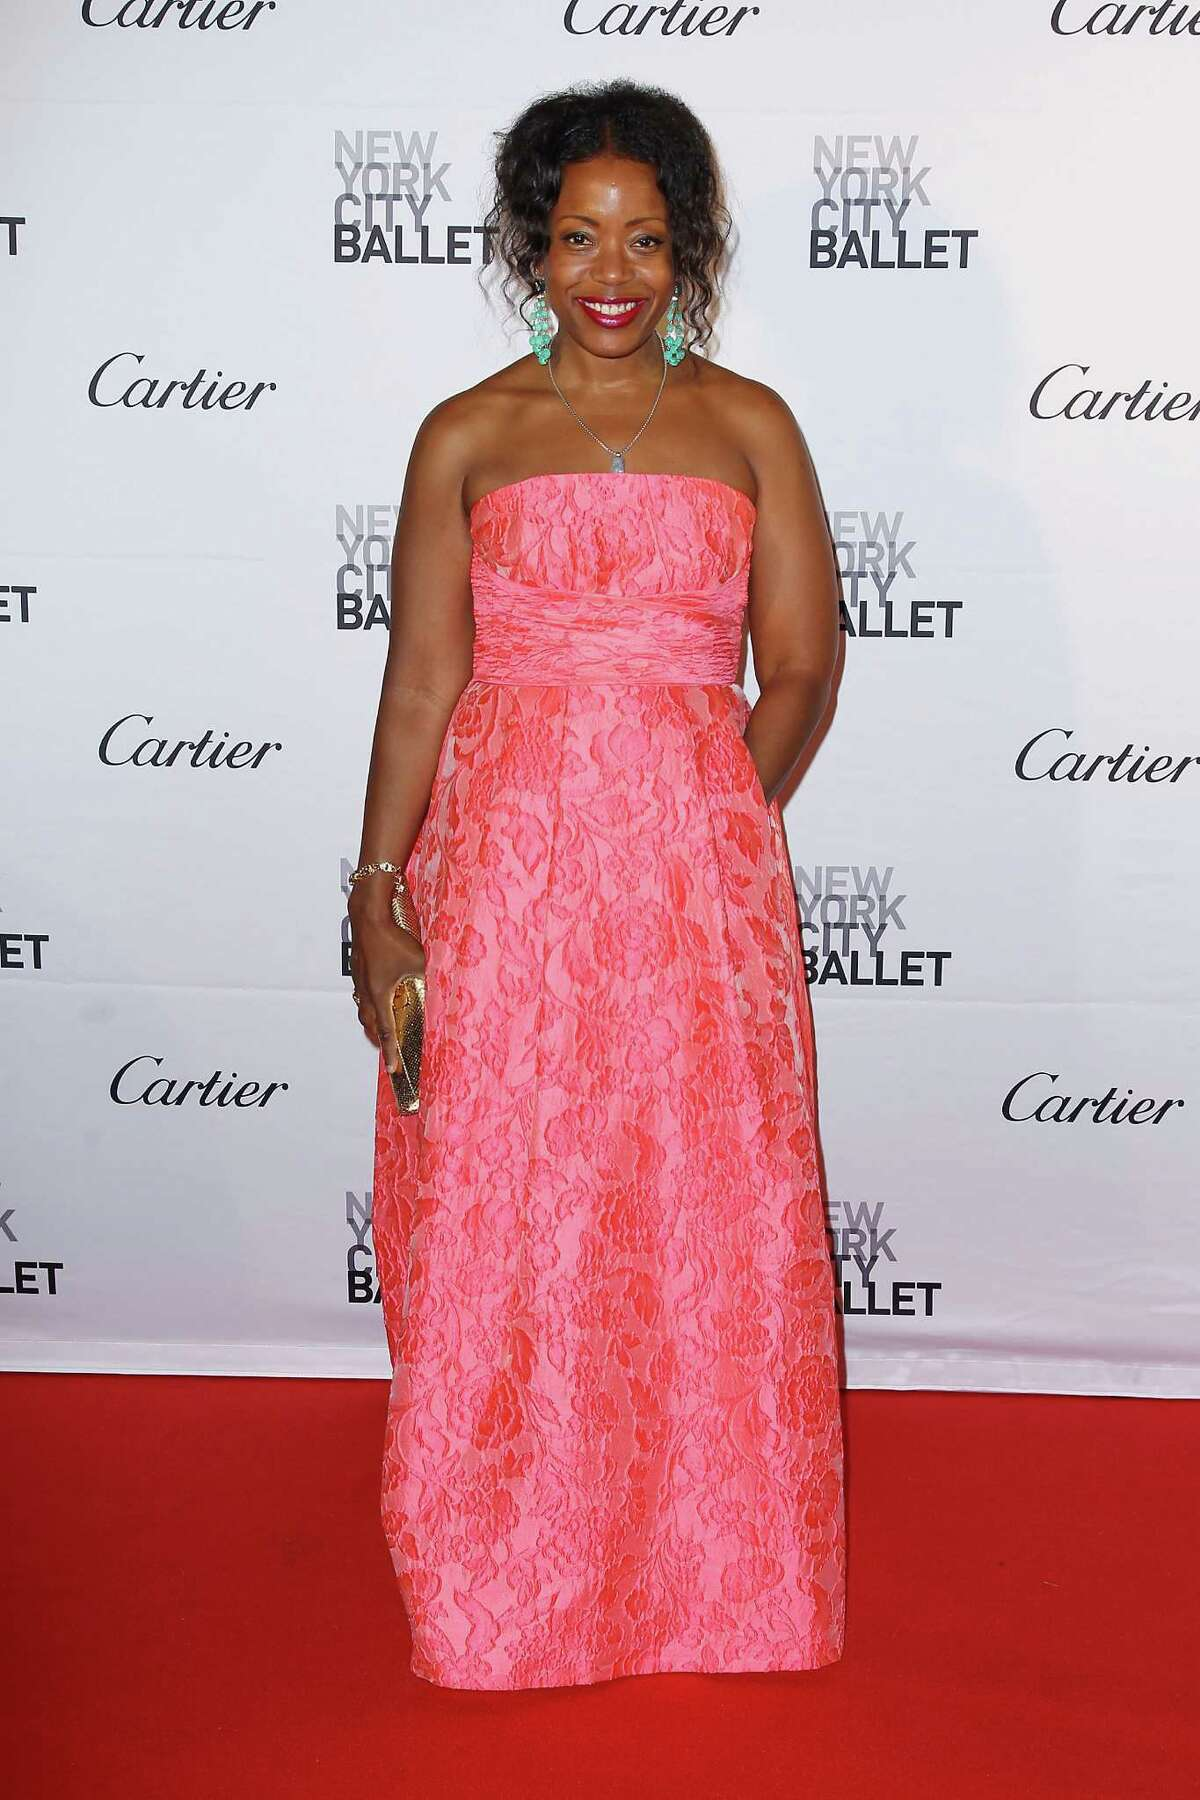 Designer Tracy Reese appears at the New York City Ballet 2015 Fall Gala, Wednesday, Sept. 30, 2015 in New York.